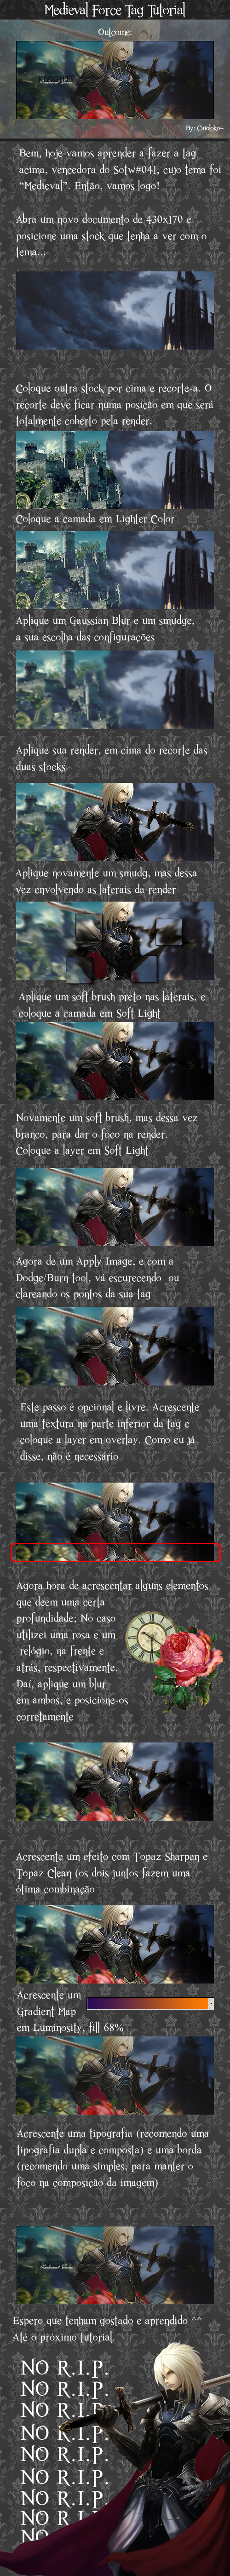 [PS] Medieval Force Tag Tutorial Medieval_force_tag_tutorial_by_caioloko-d3h234x